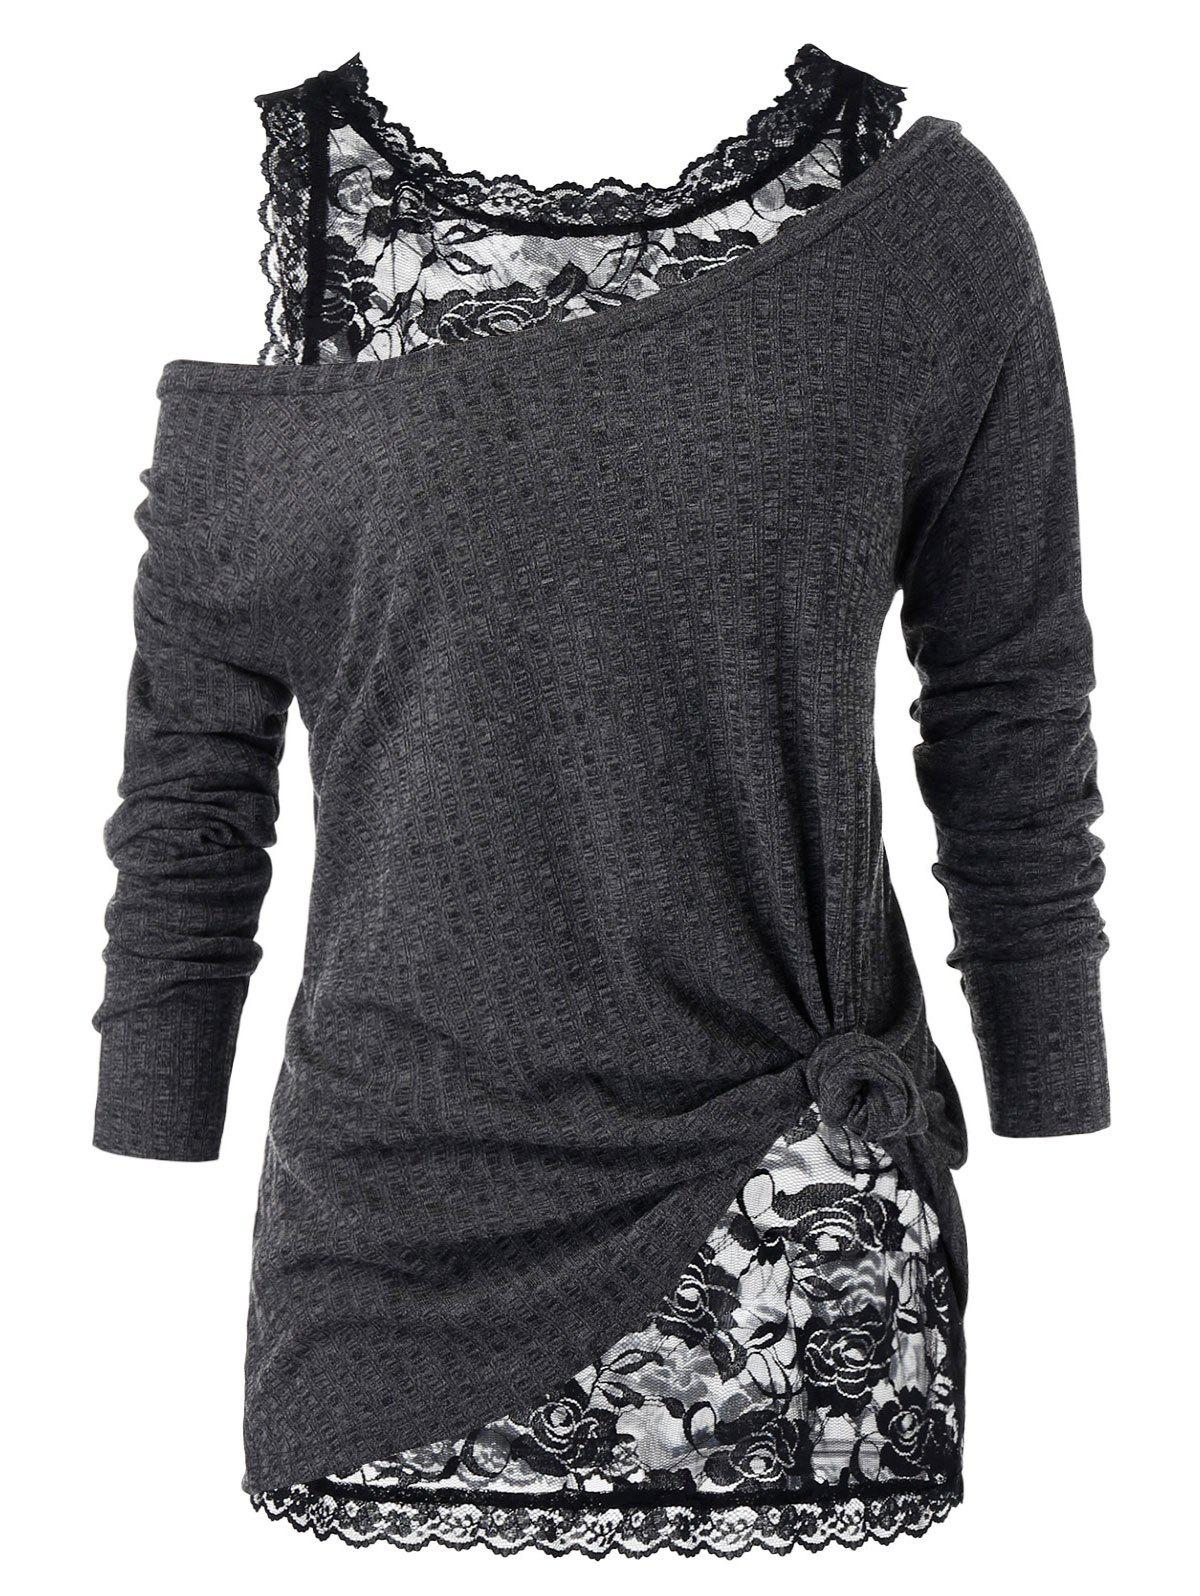 Online Plus Size Skew Neck Sweater and Floral Lace Top